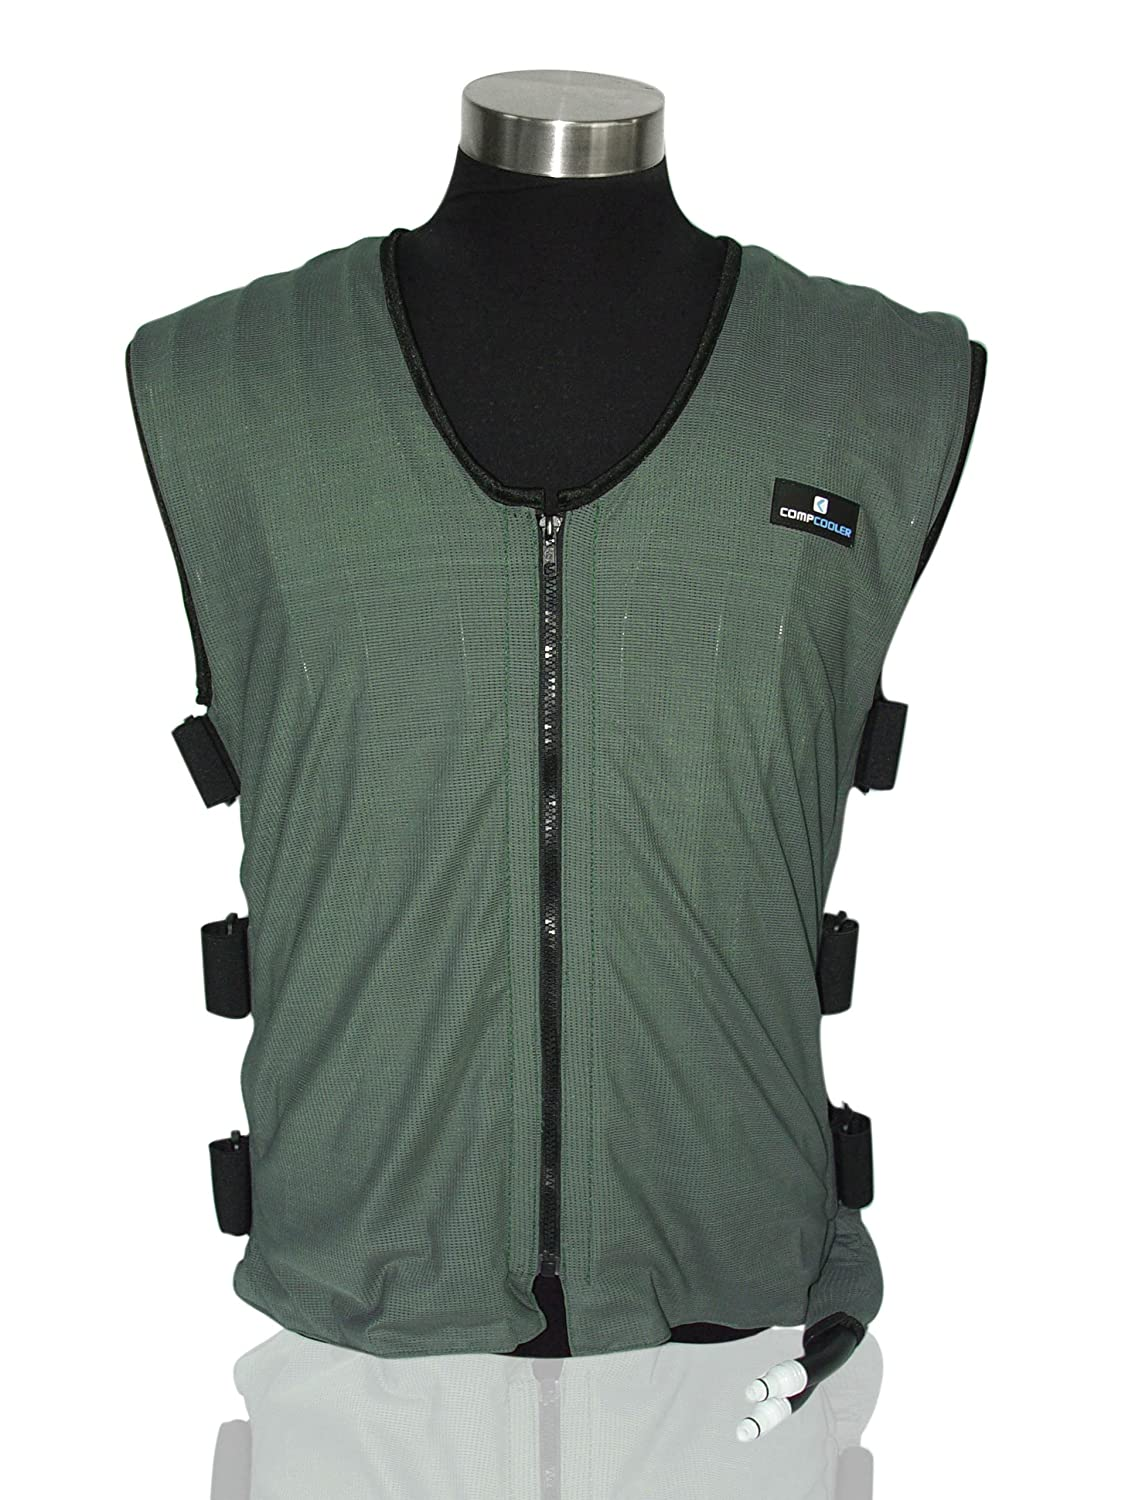 COMPCOOLER Liquid Cooling Vest, Dark Green Outer Mesh Fabric, Black Mesh Liner, Reversible Application